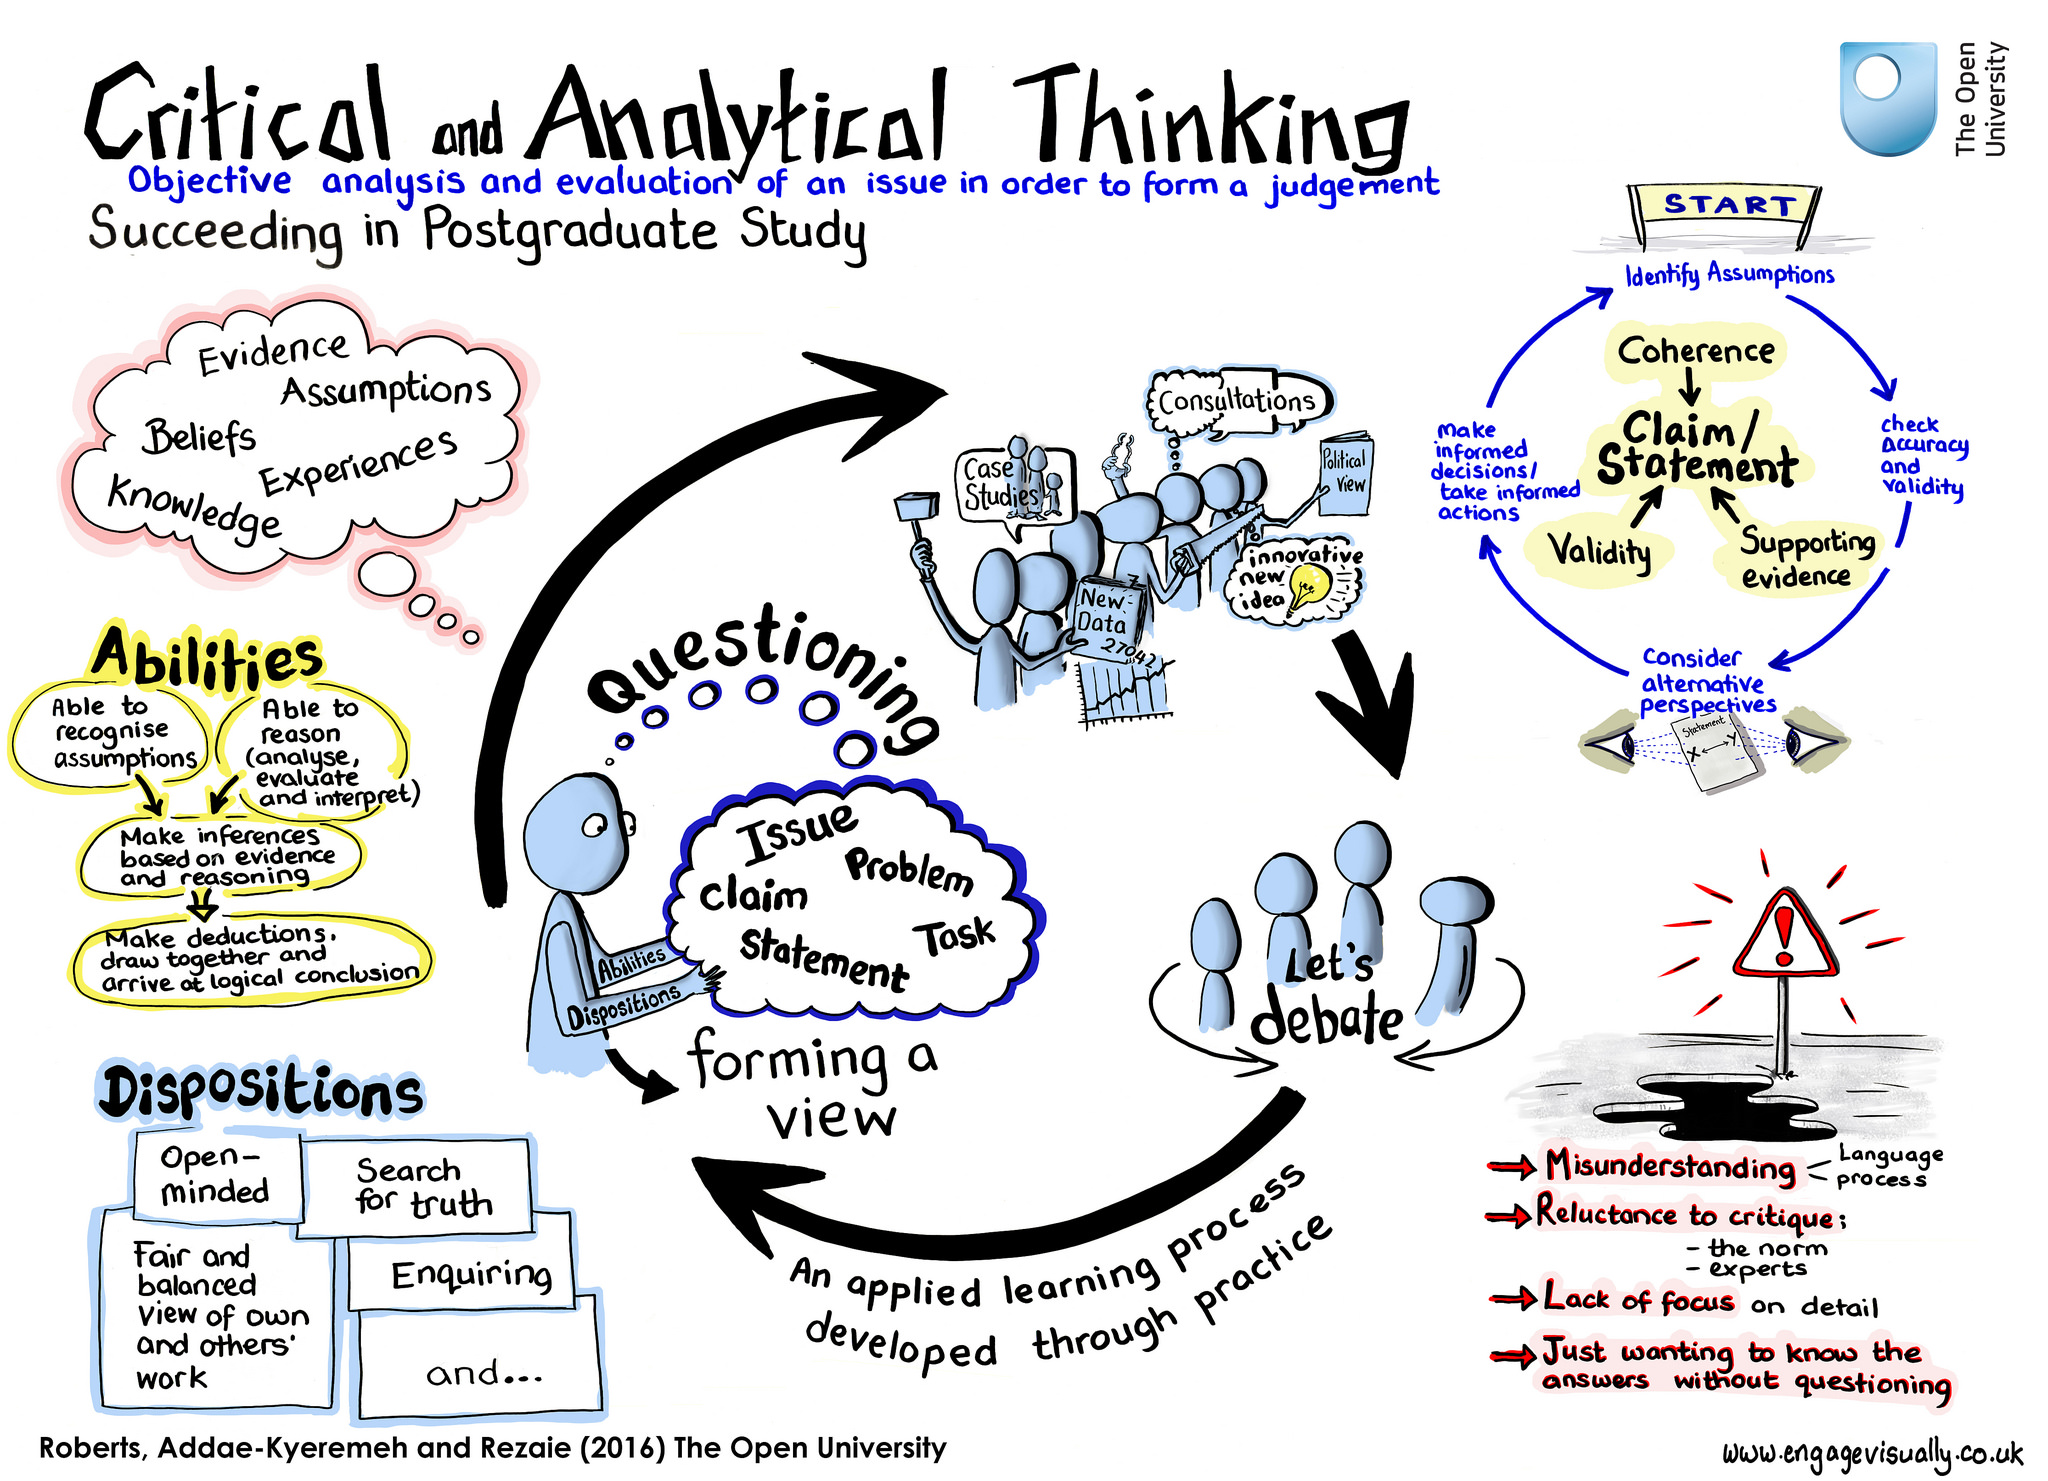 How to develop analytical thinking in future psychologists